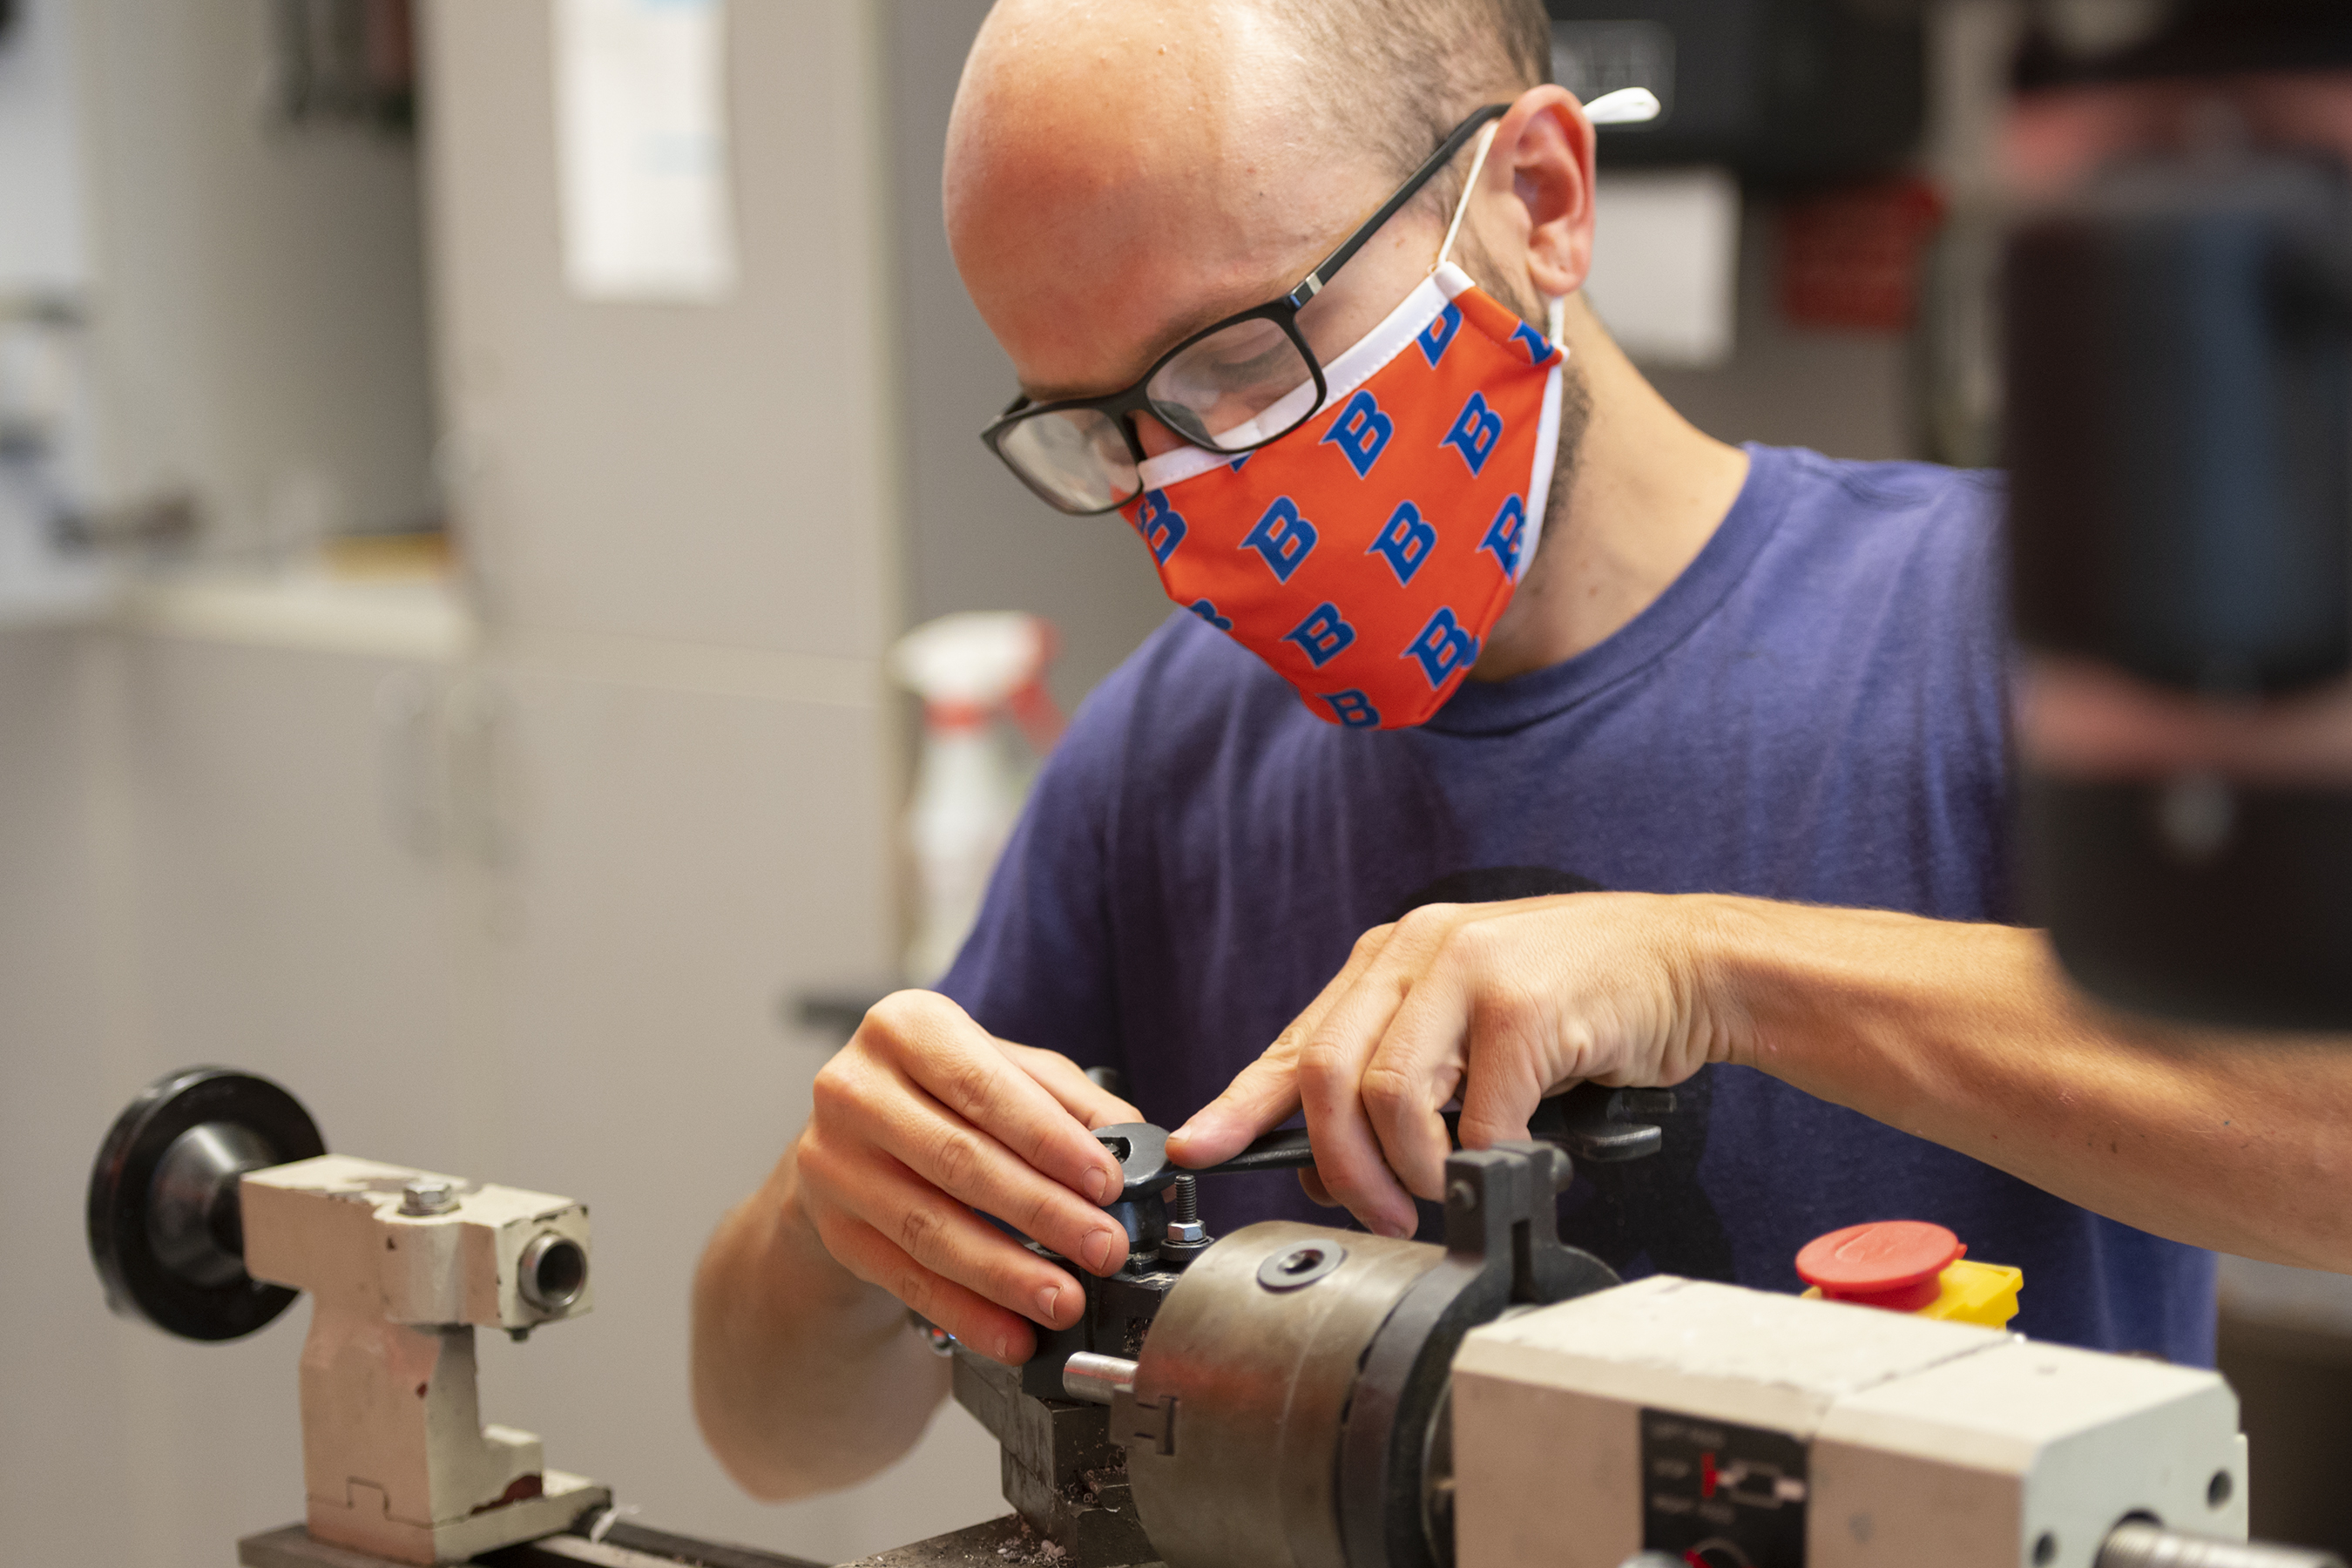 Student wearing a BSU mask works with lab equipment, holding a wrench